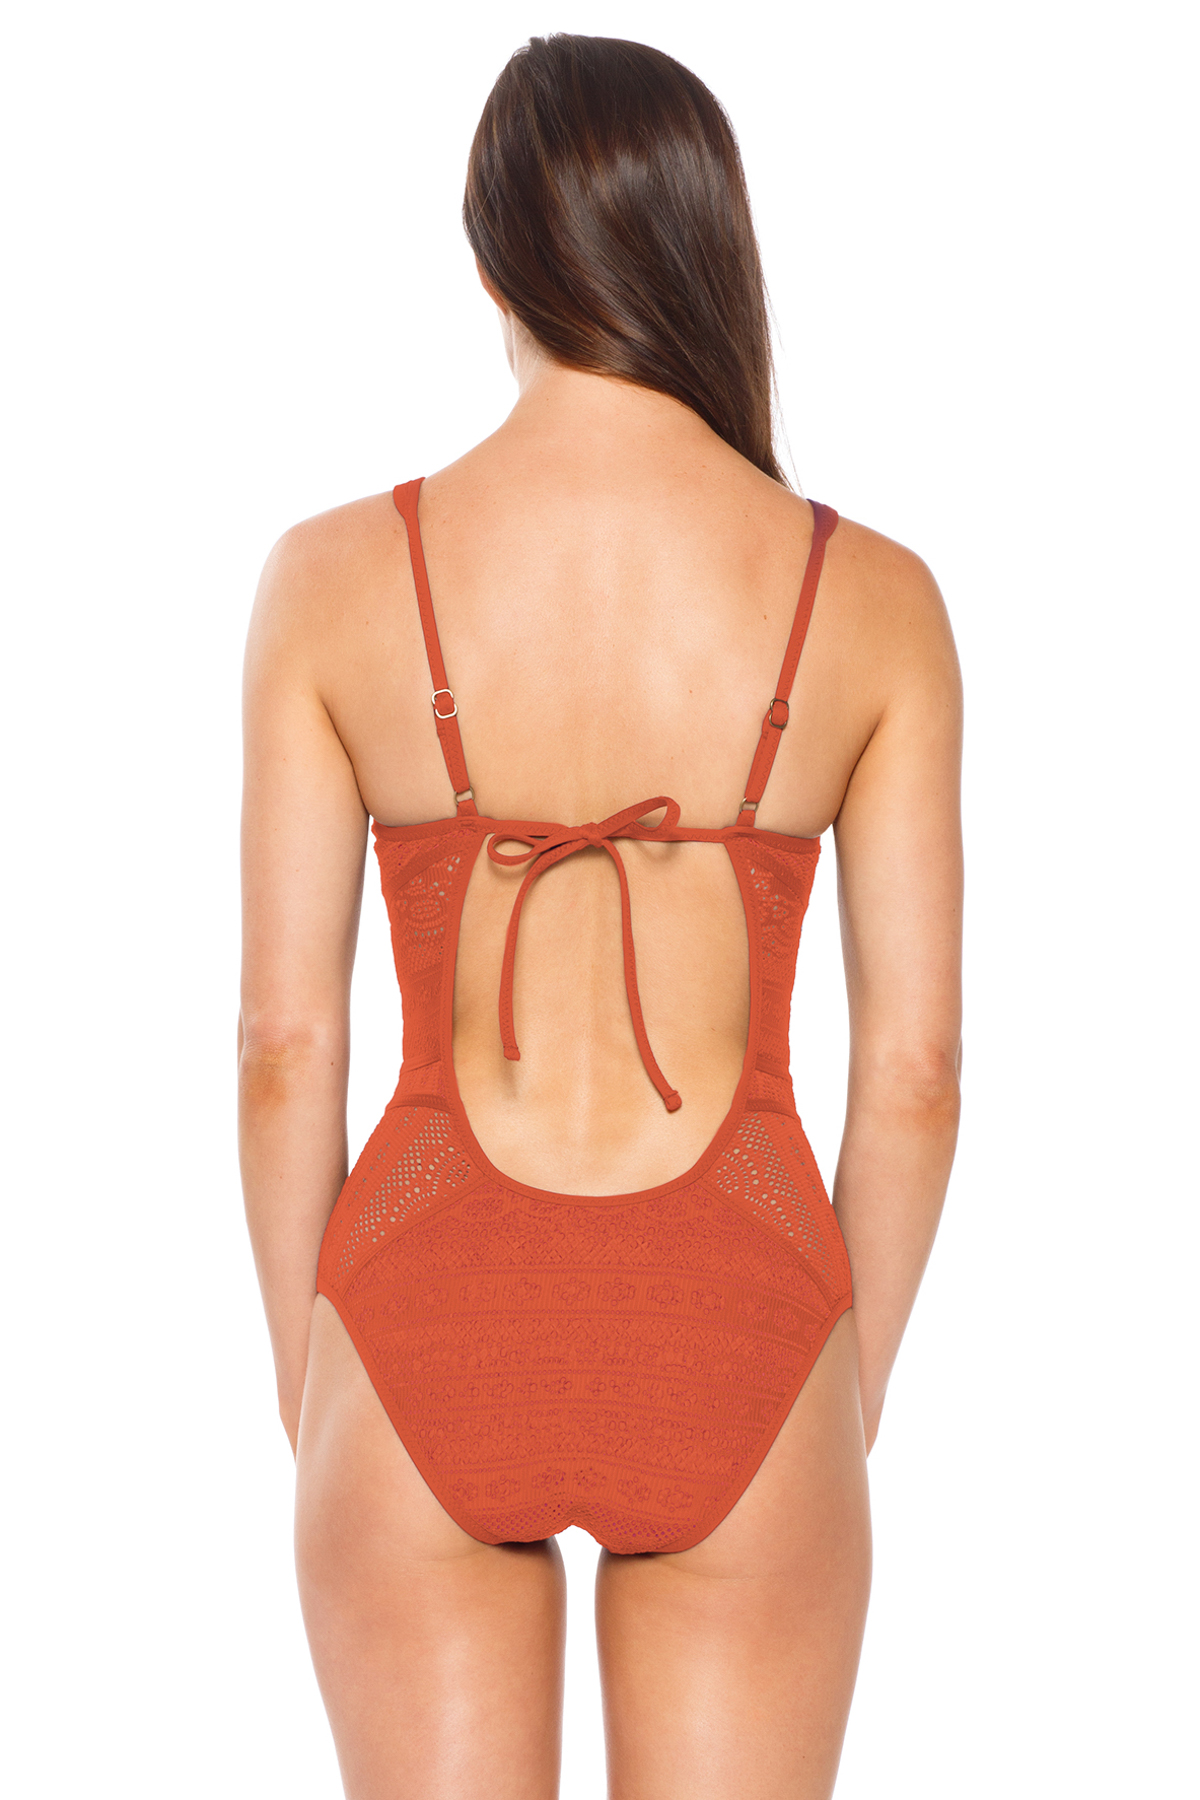 Keyhole Plunge One Piece Swimsuit - Clay 4